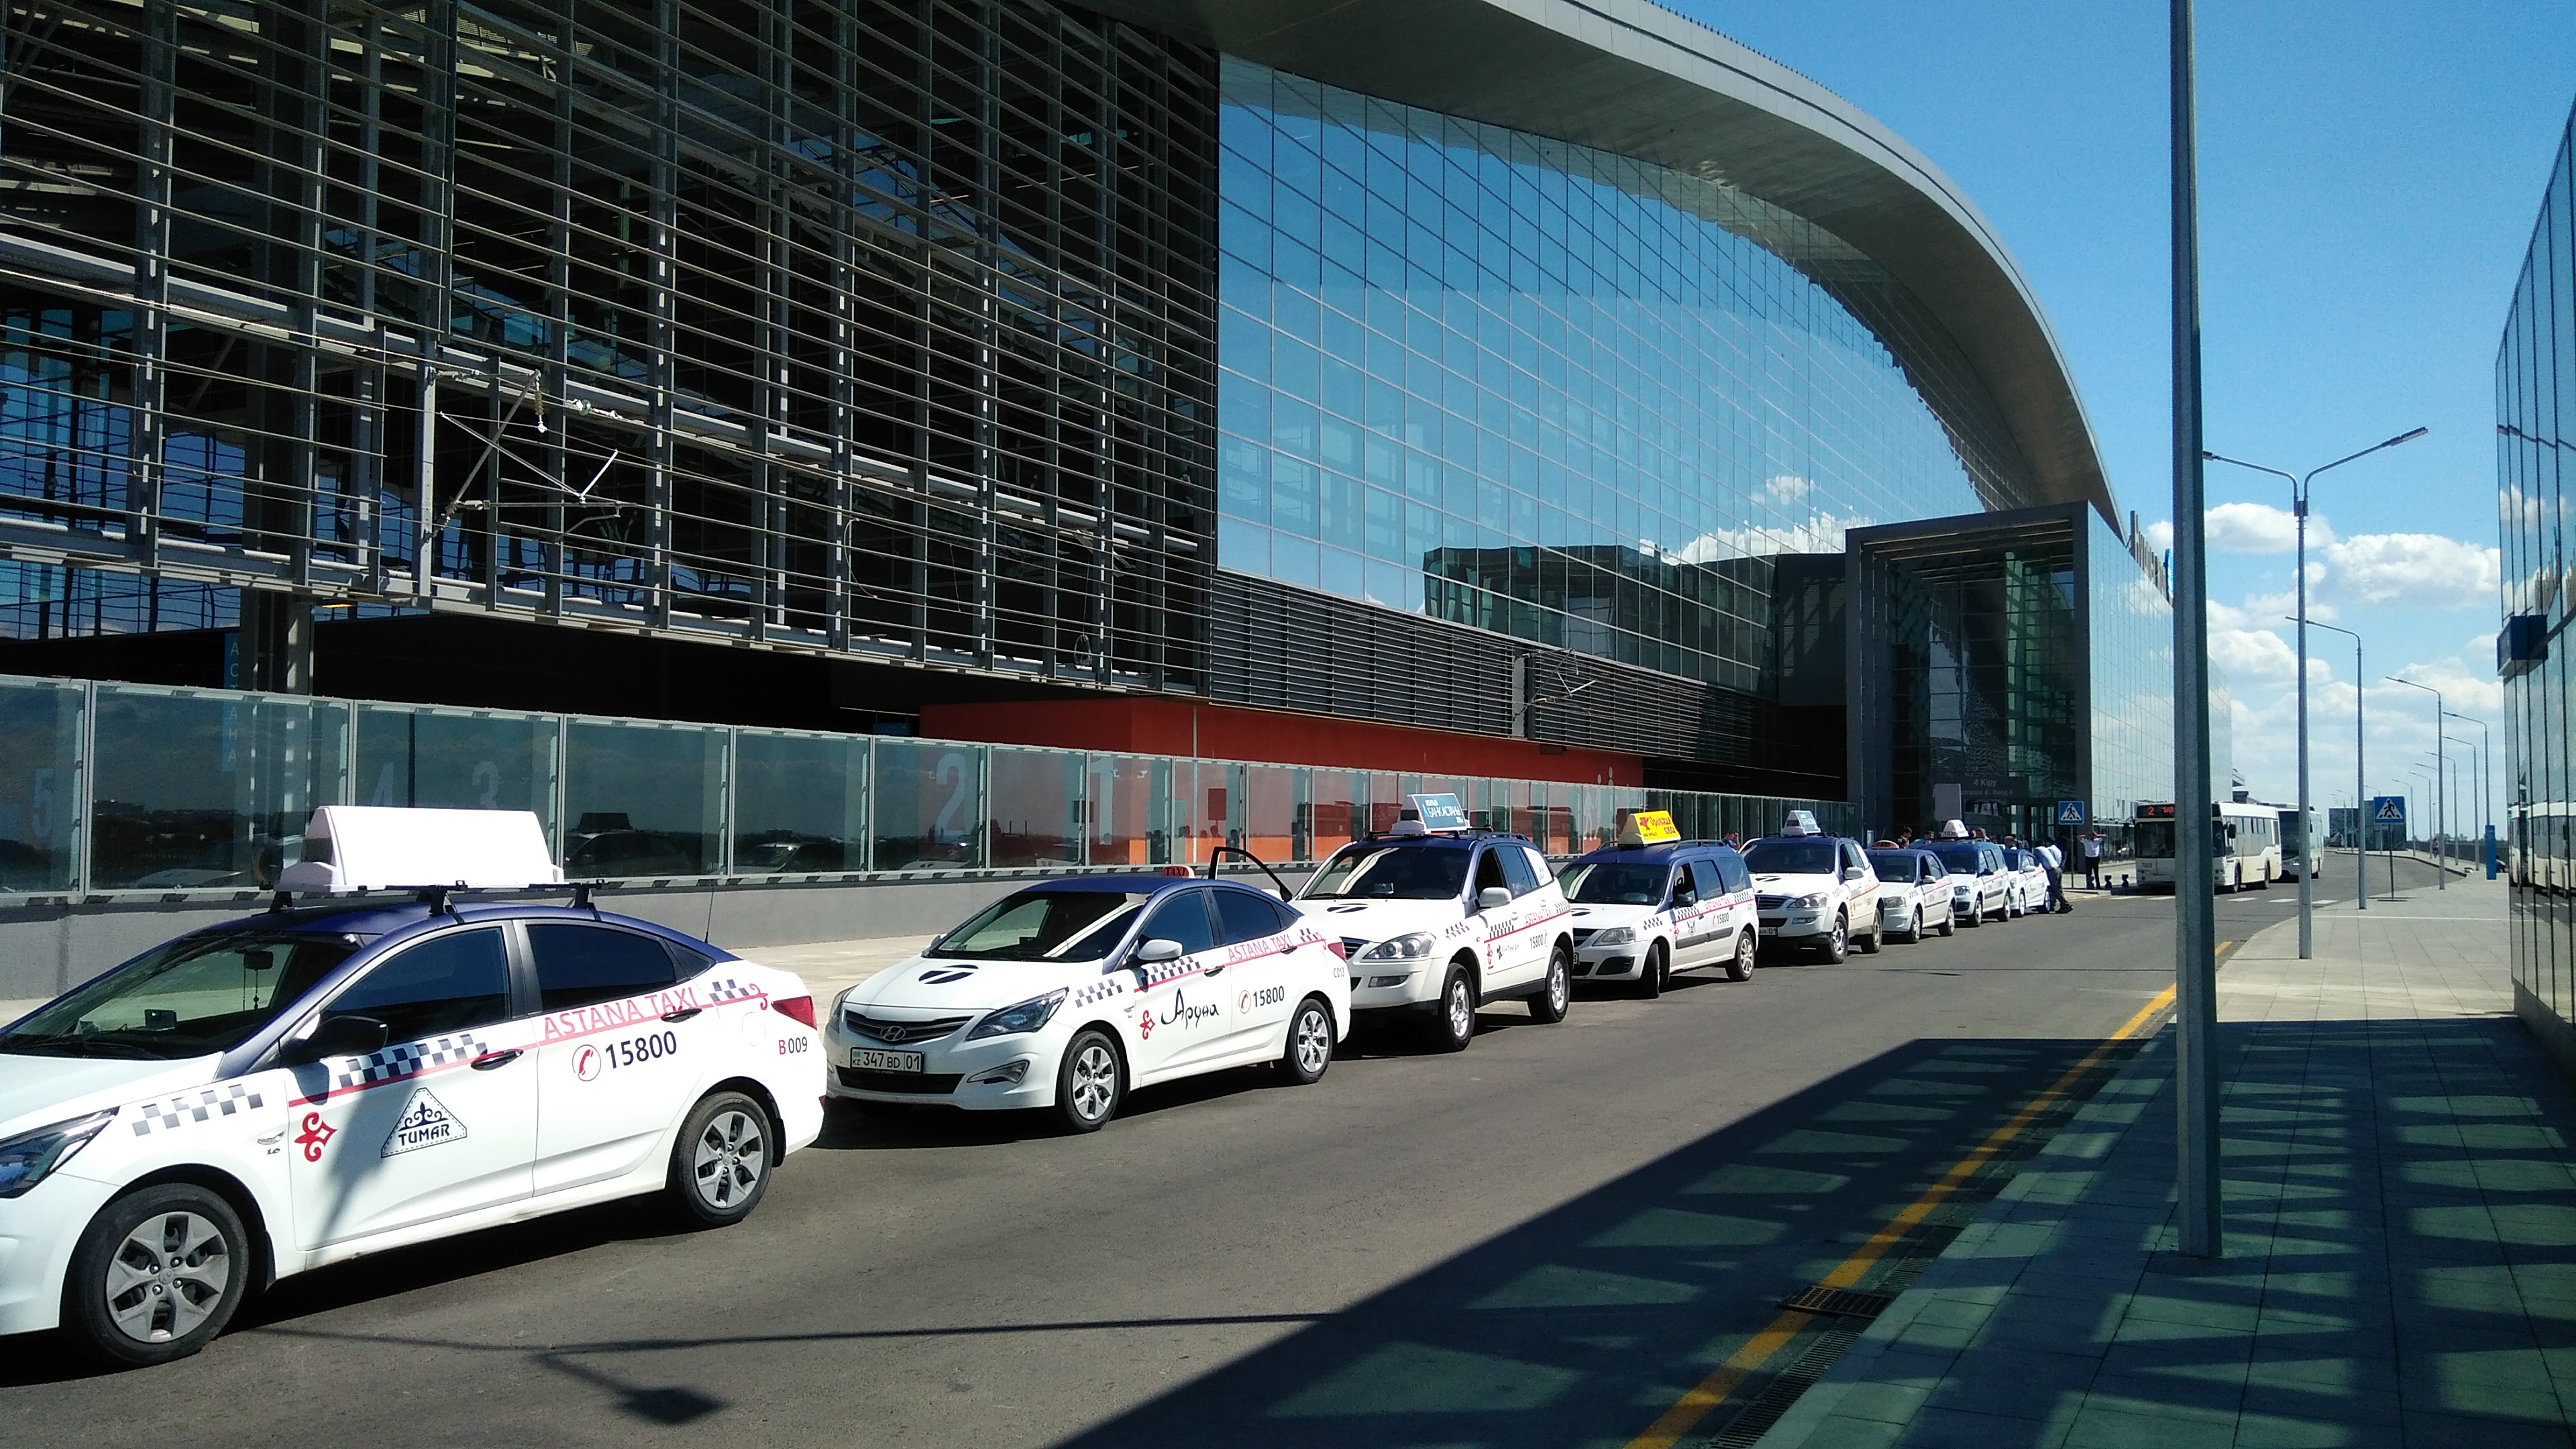 Astana Taxi Launches At New Nurly Zhol Train Station The